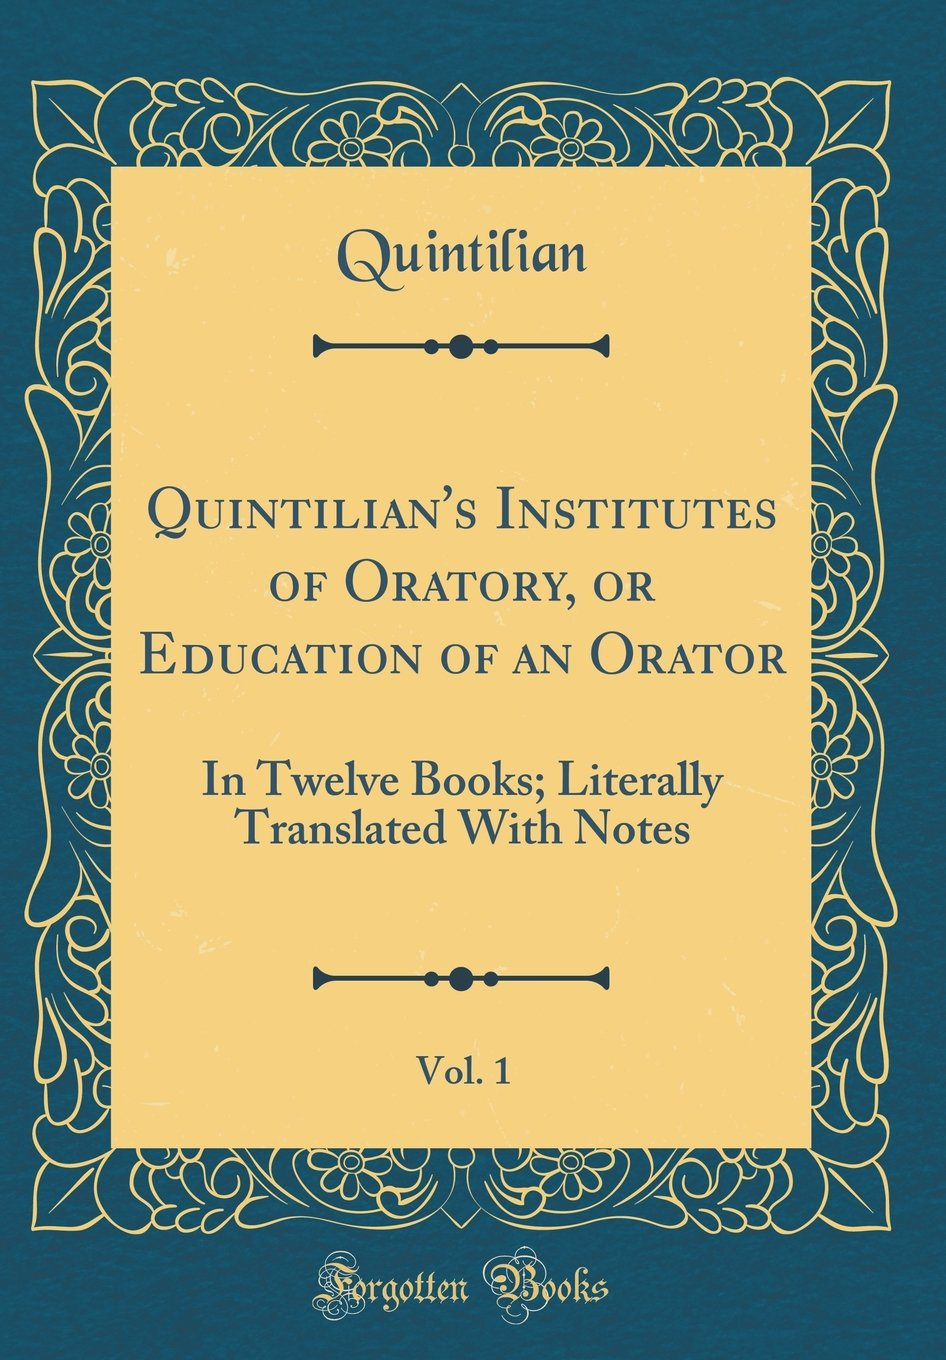 Download Quintilian's Institutes of Oratory, or Education of an Orator, Vol. 1: In Twelve Books; Literally Translated With Notes (Classic Reprint) ebook